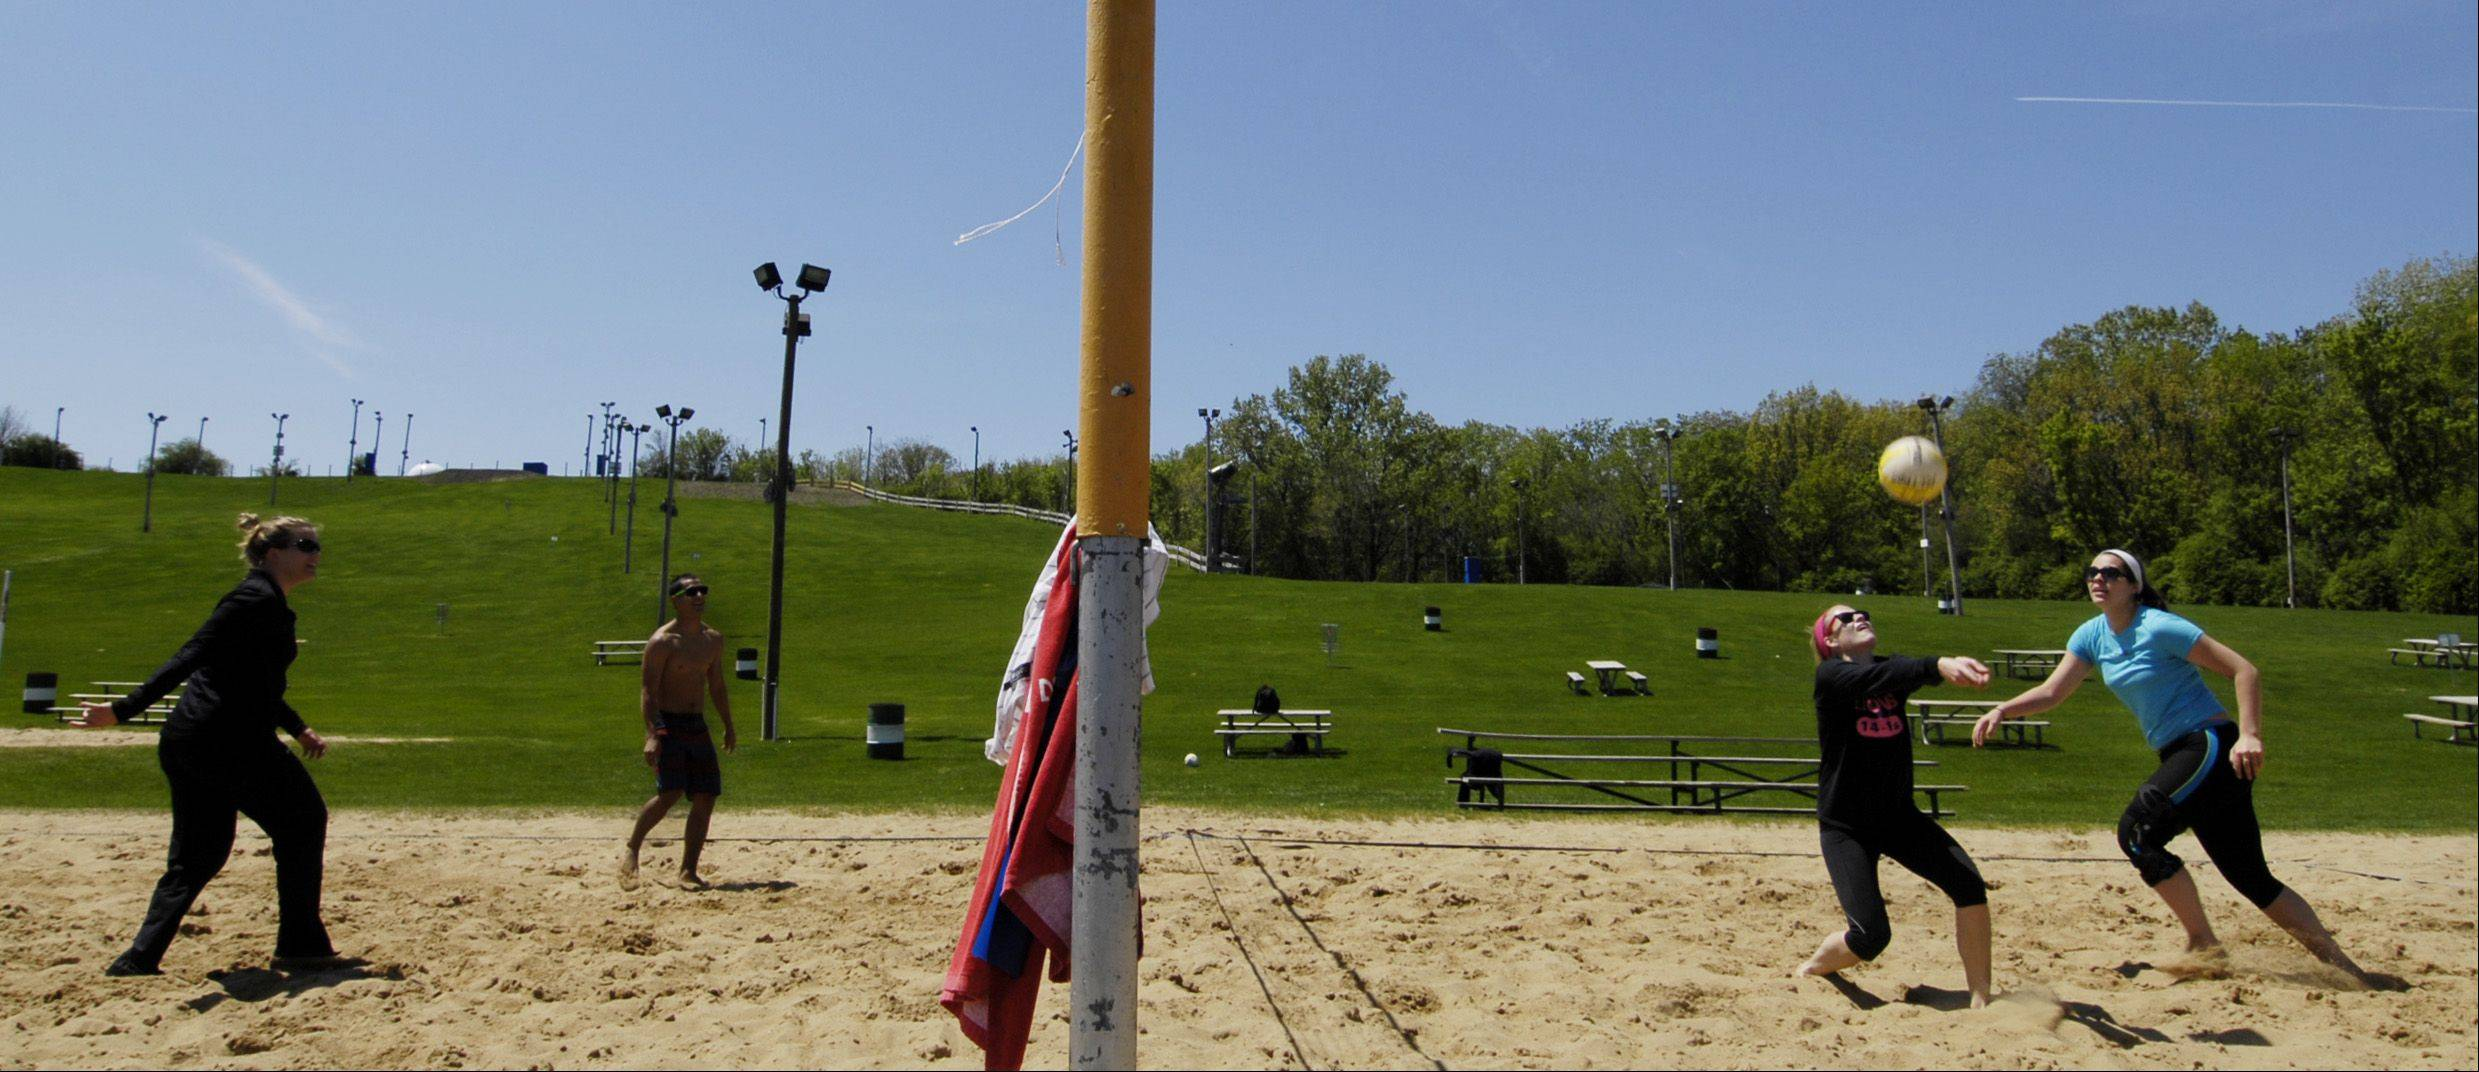 Sisters Colleen and Nora Mitros, right, play sand volleyball with some friends at Four Lakes in Lisle, Monday.